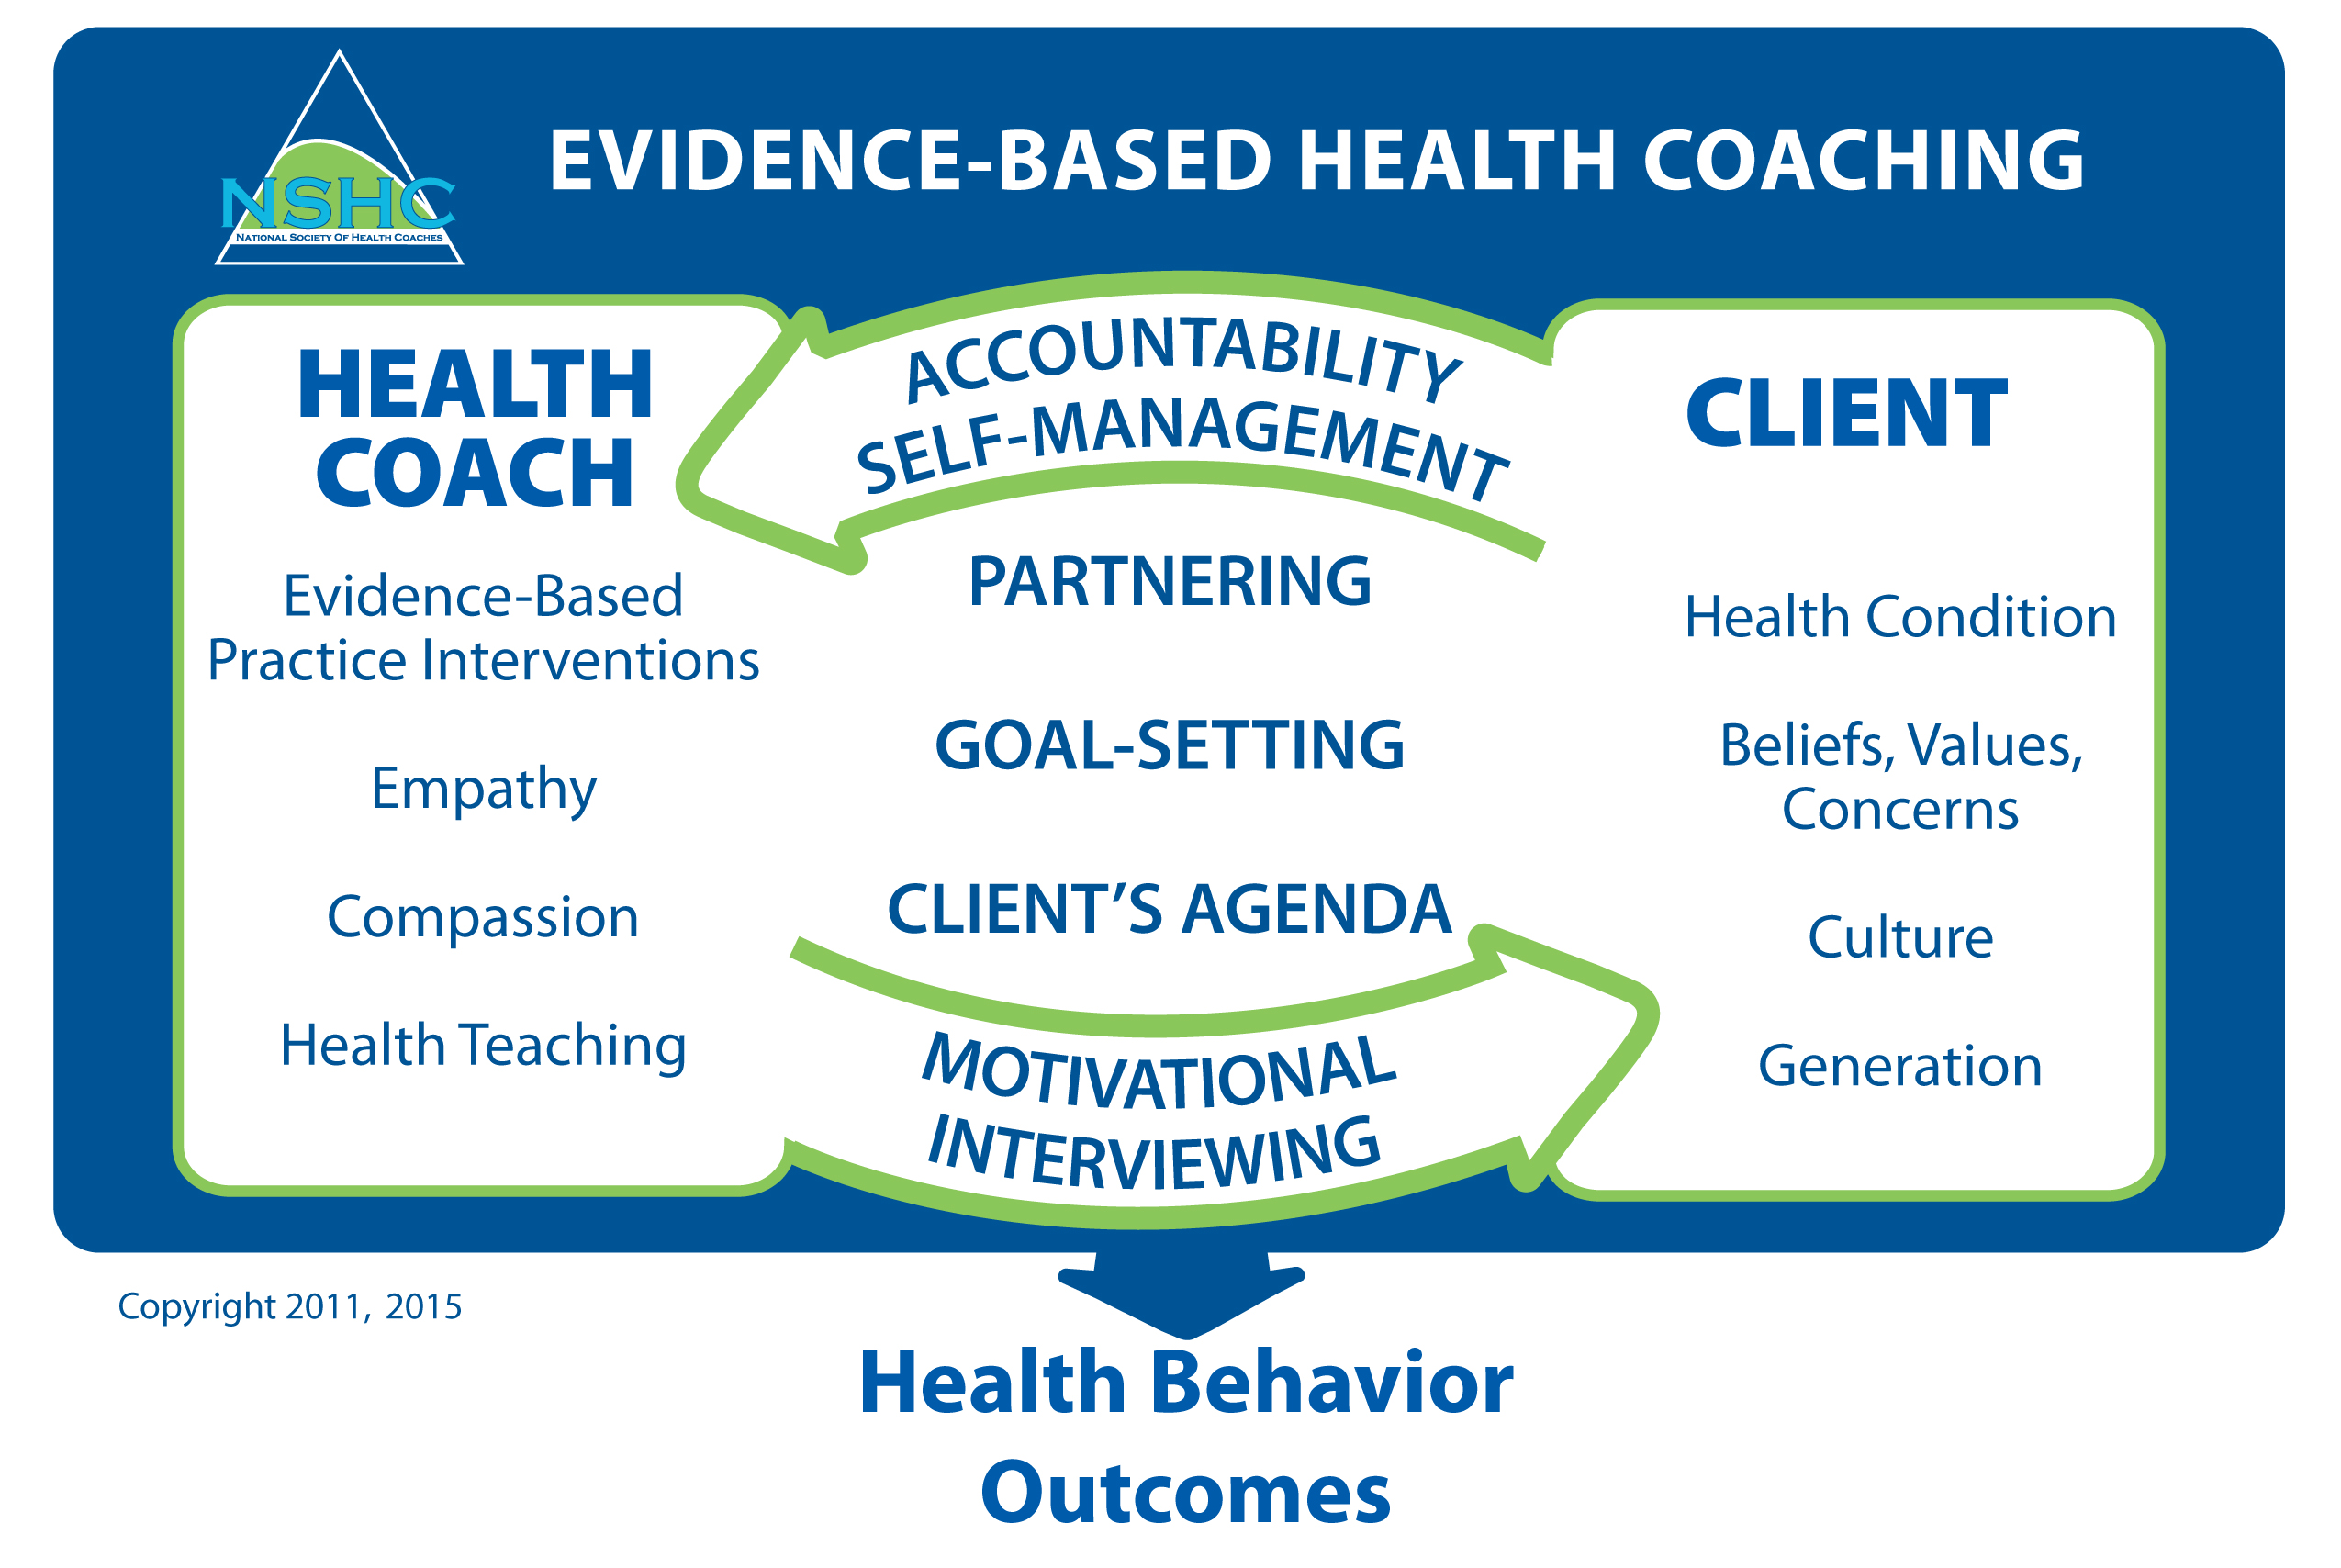 First Clinical Model of Evidence-based Health Coaching